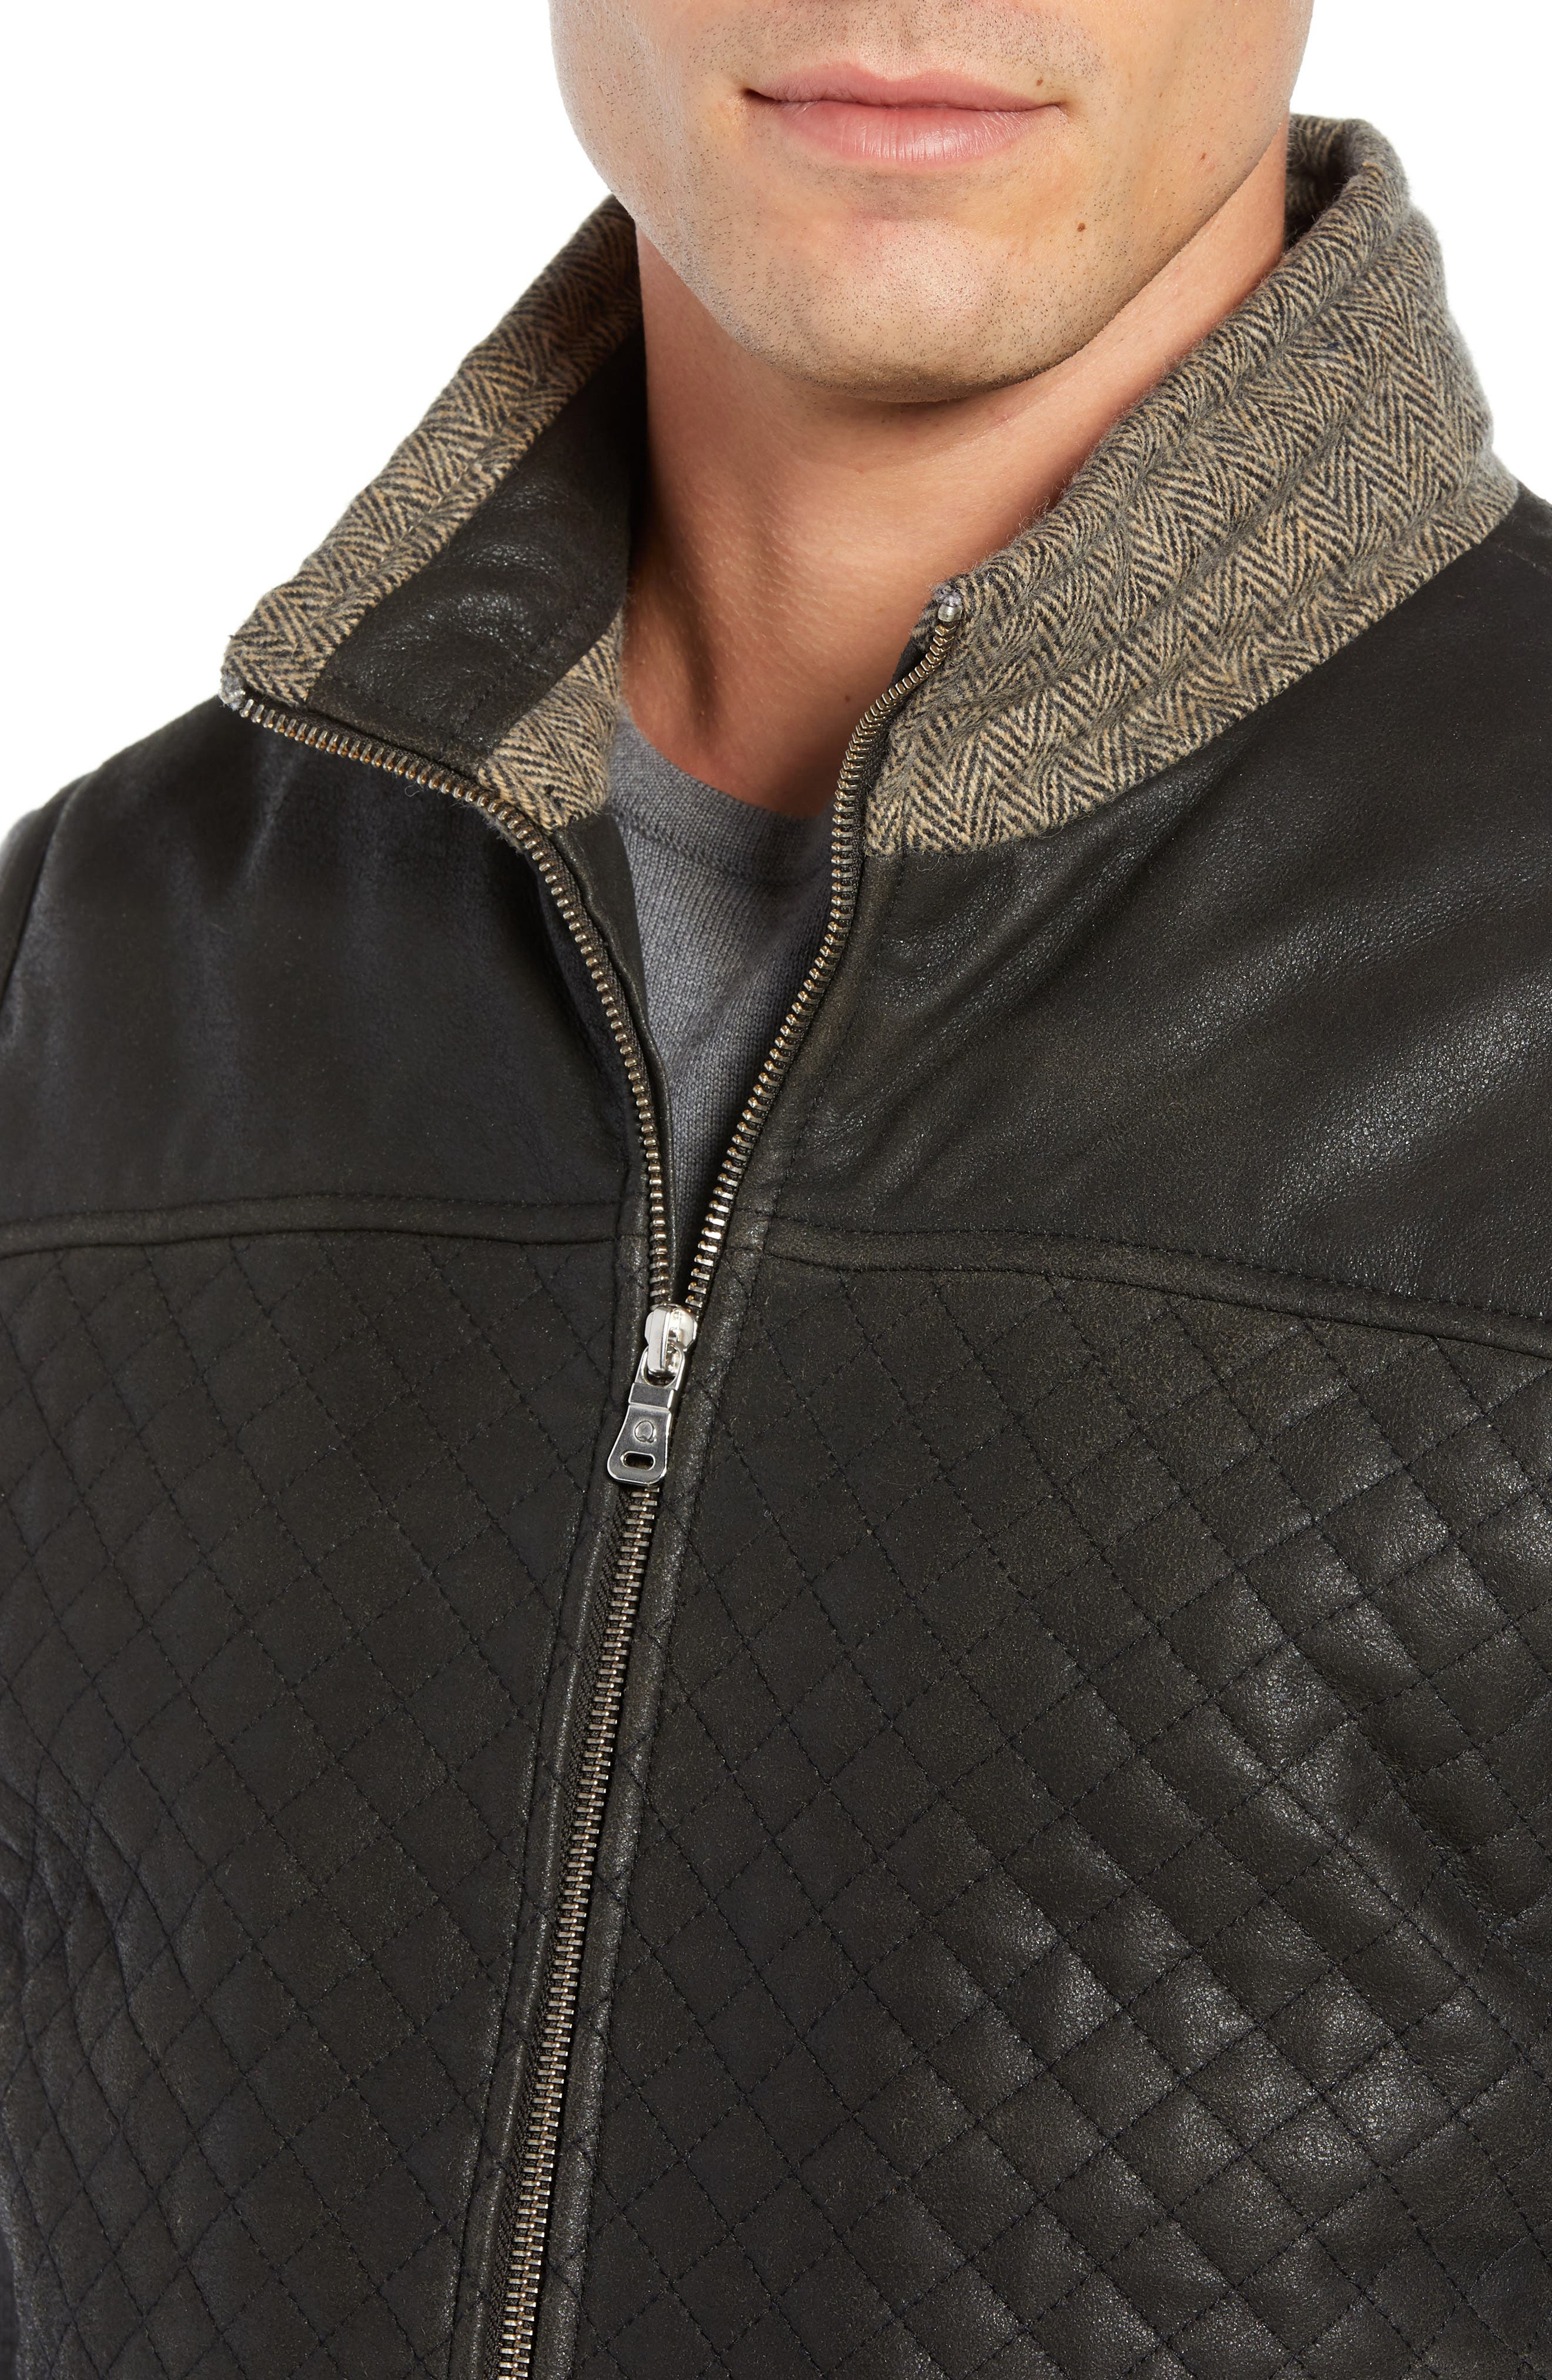 Quilted Leather & Wool Vest,                             Alternate thumbnail 4, color,                             001